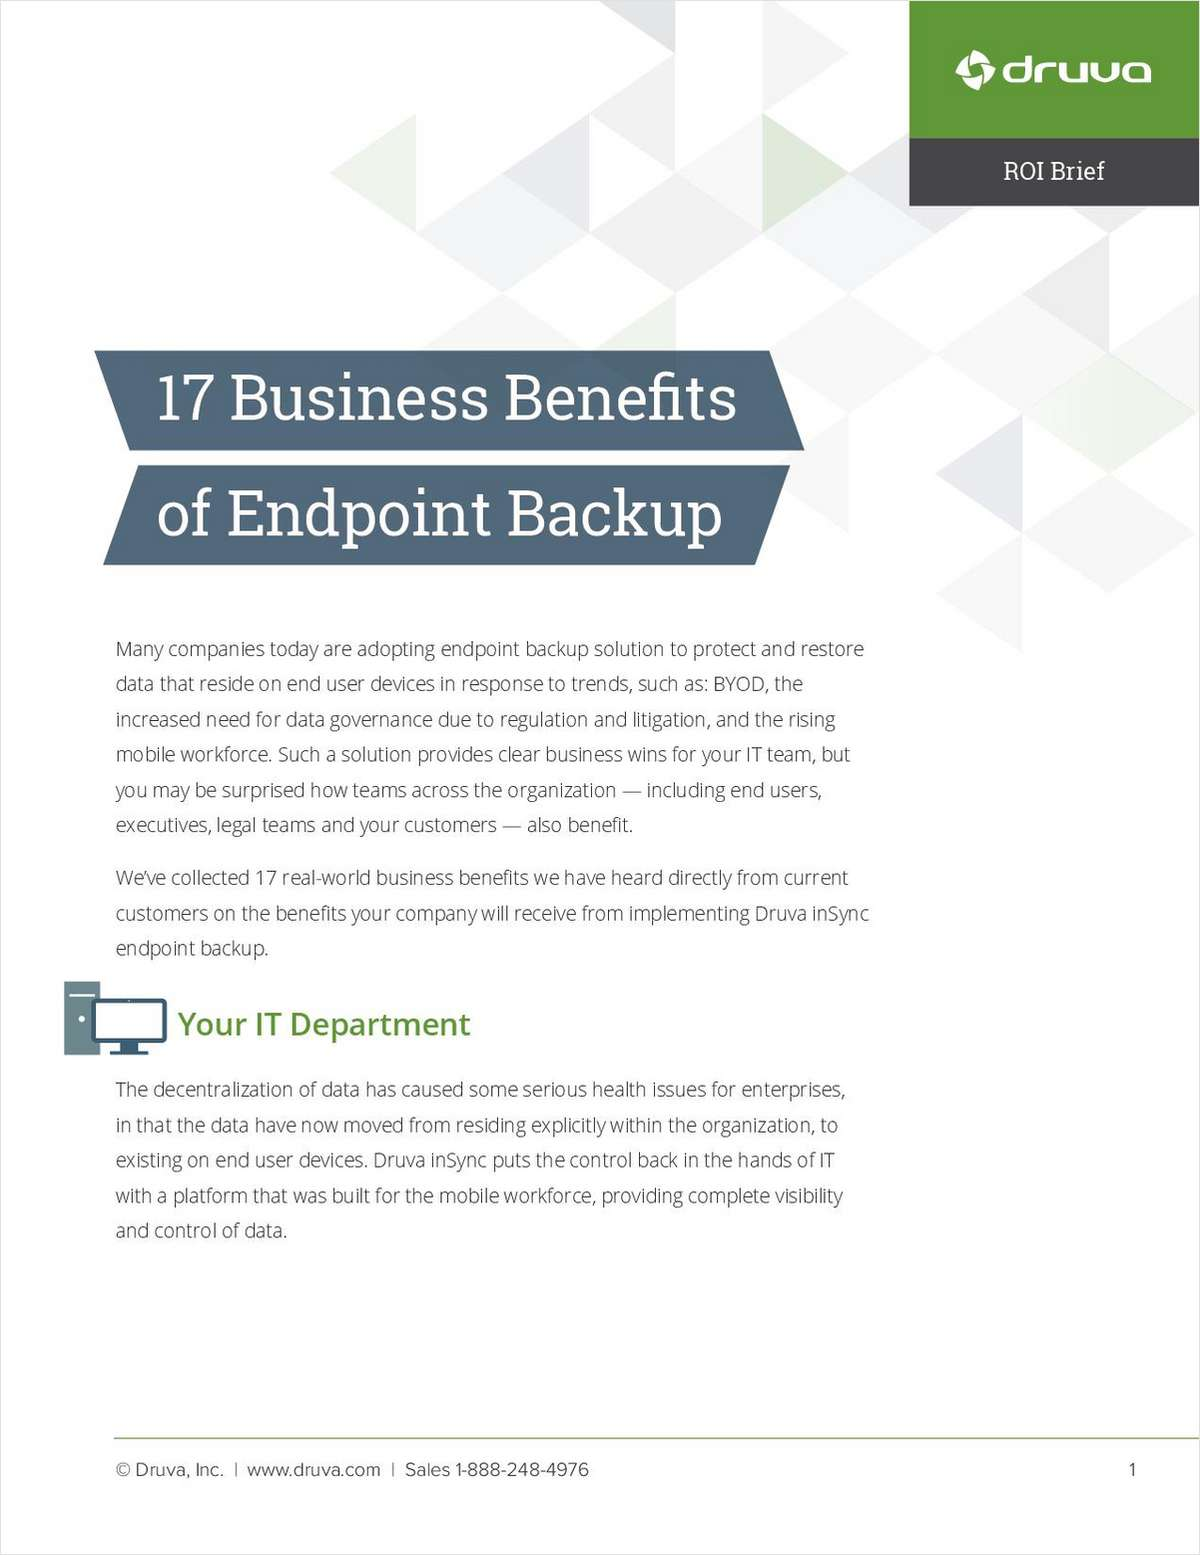 17 Business Benefits of Endpoint Backup